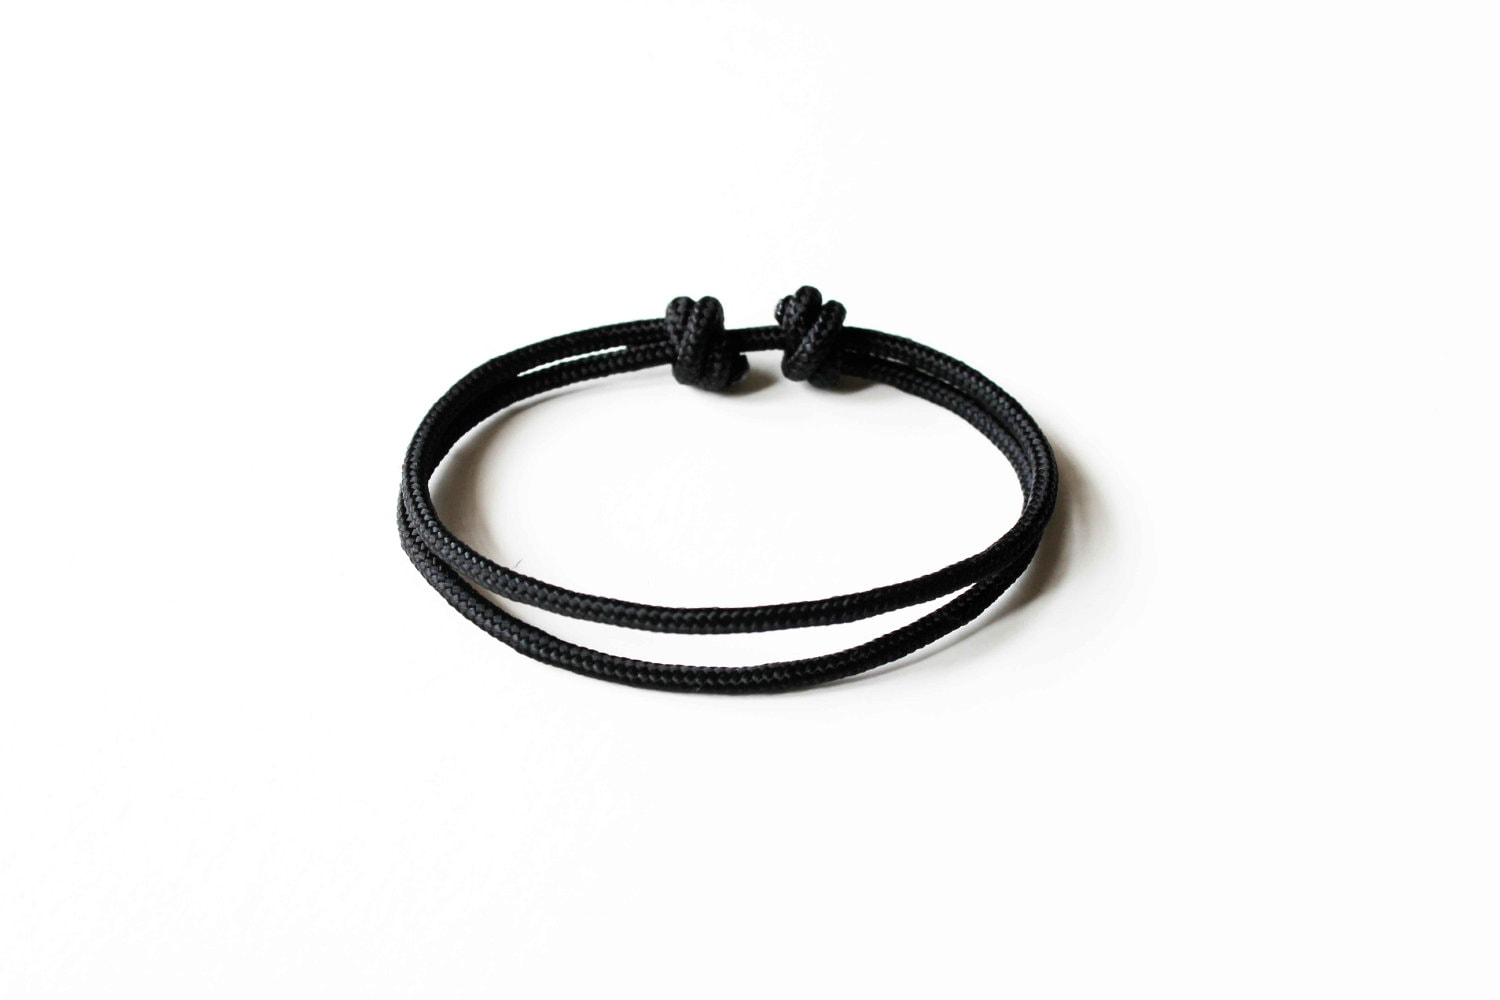 patrick kiel hazard products james oliver rope bracelet